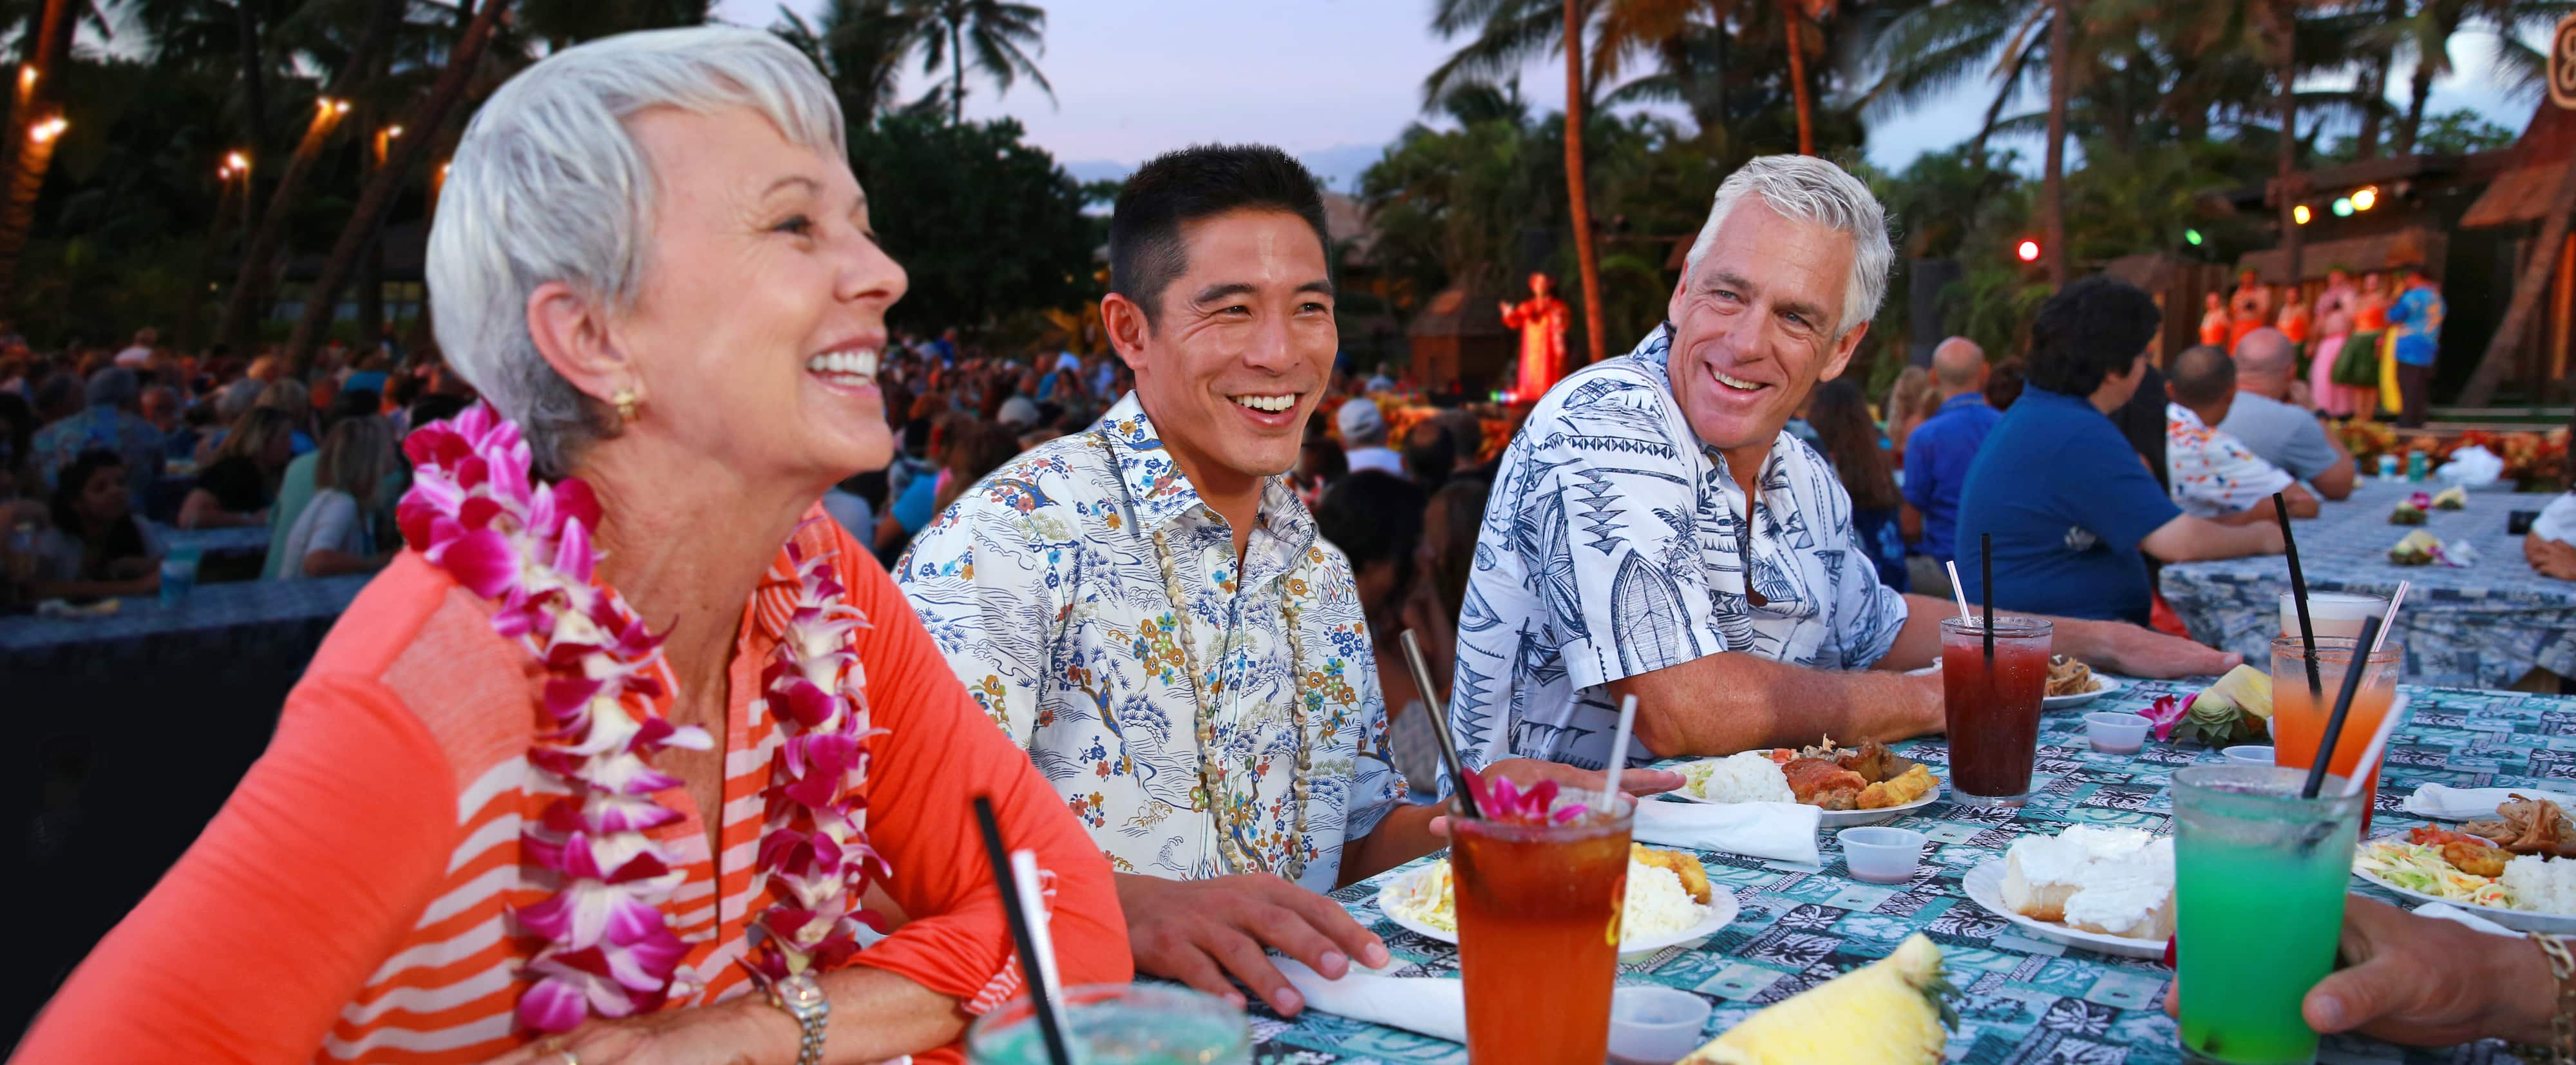 A traditional feast at Paradise Cove Luau